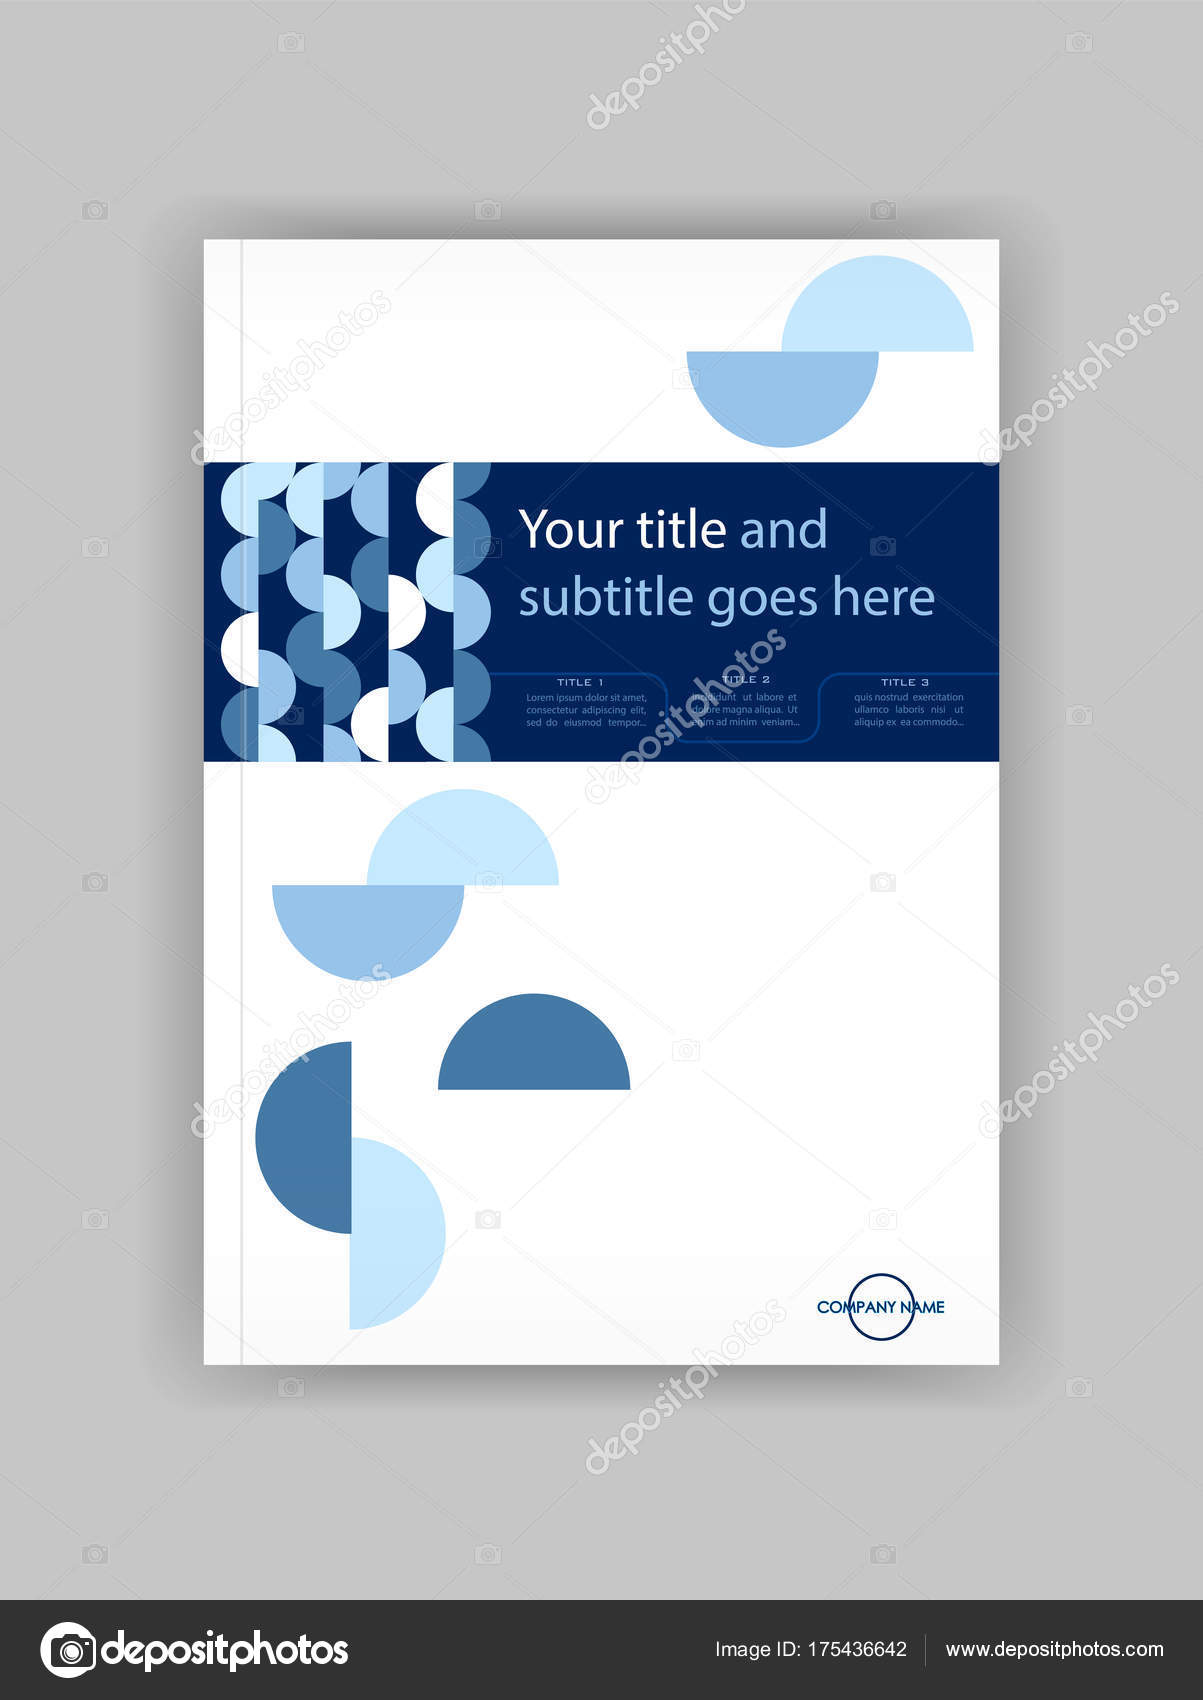 Business Deposit Book Cover : Blue a business book cover design template good for